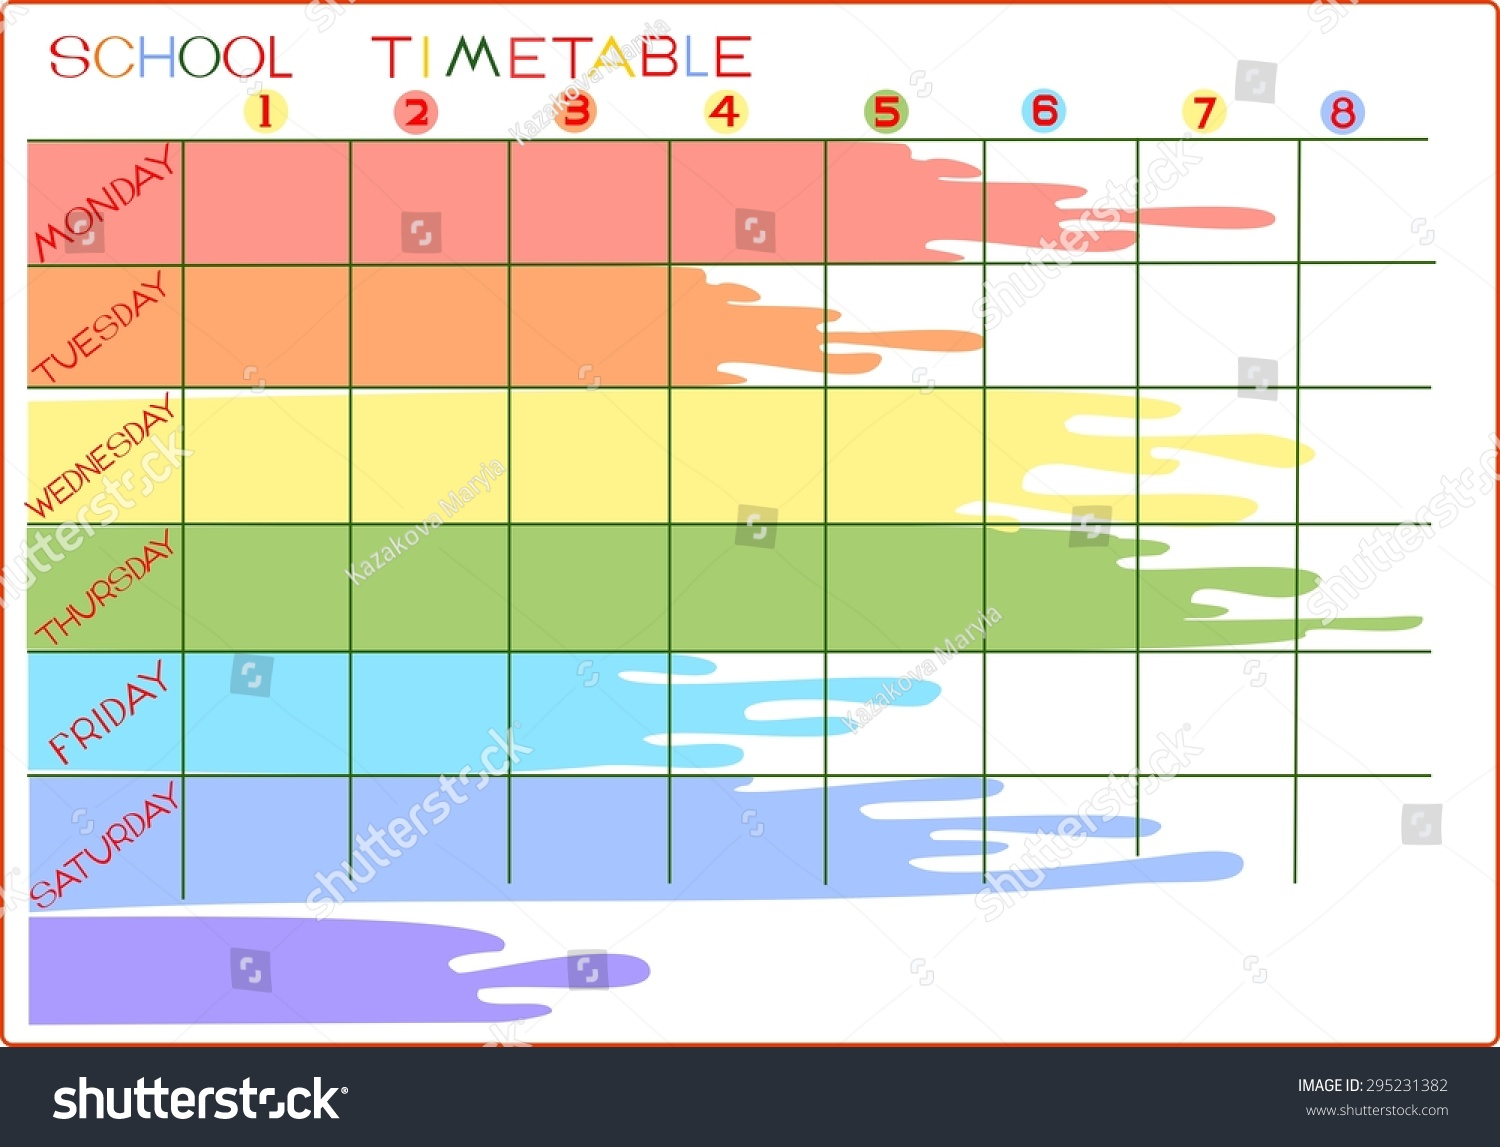 School Timetable Illustration 295231382 Shutterstock – School Time Table Designs